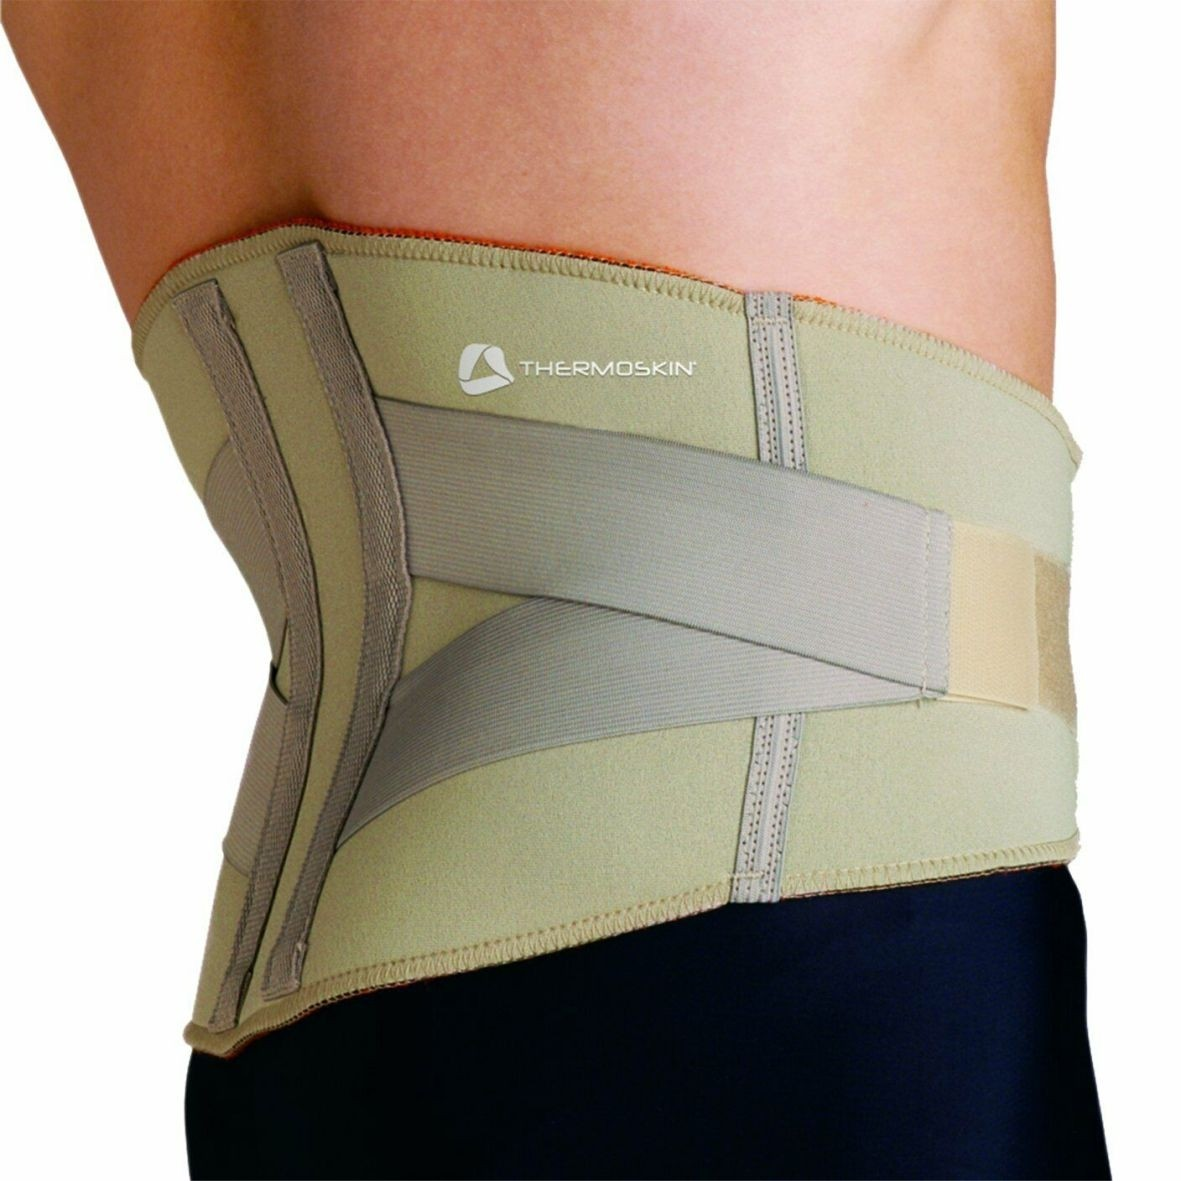 Thermoskin Adjustable Lumbar Support Beige